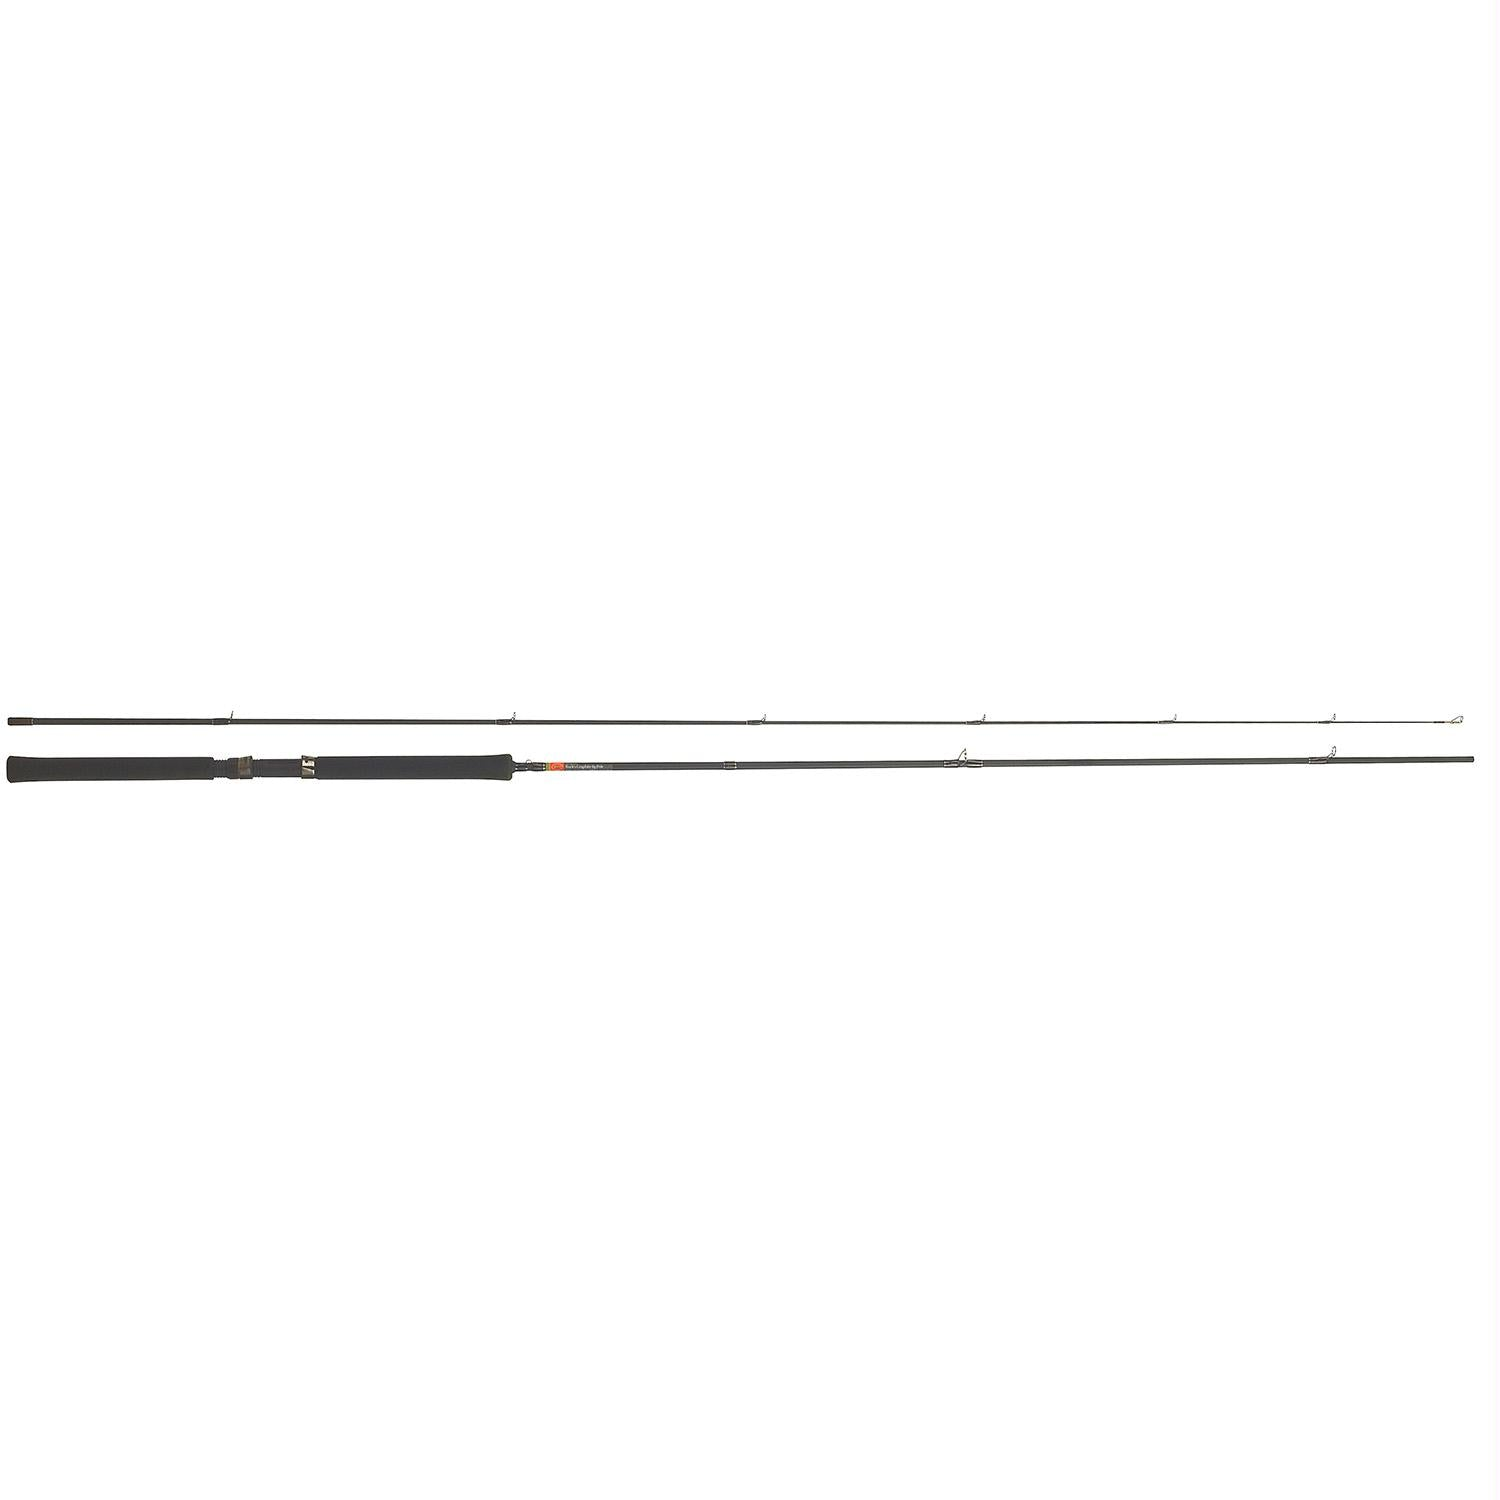 BnM Bucks Graphite Jig Pole 12 foot 2 Piece - Survival Camping Pro